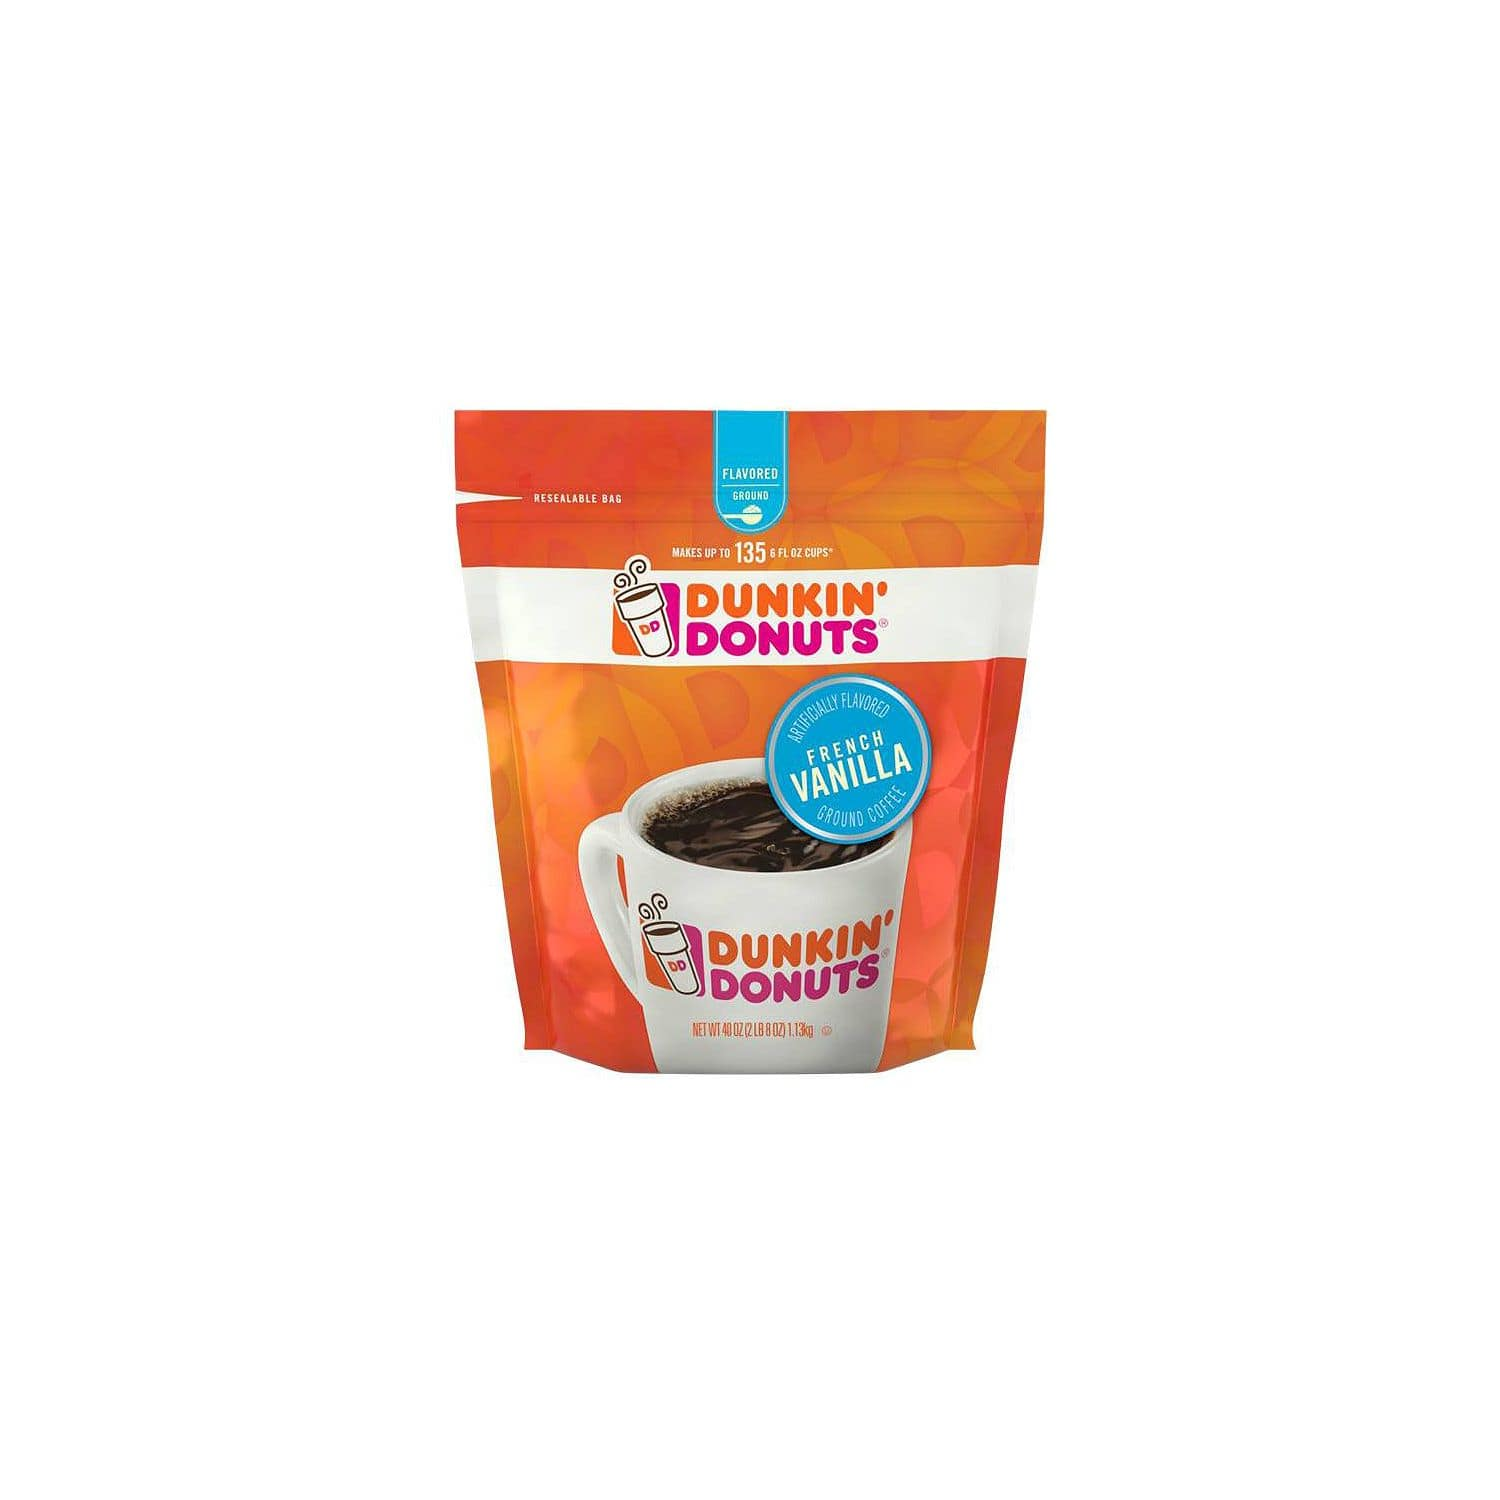 40 oz. Dunkin' Donuts Ground Coffee French Vanilla $9.81 shipped